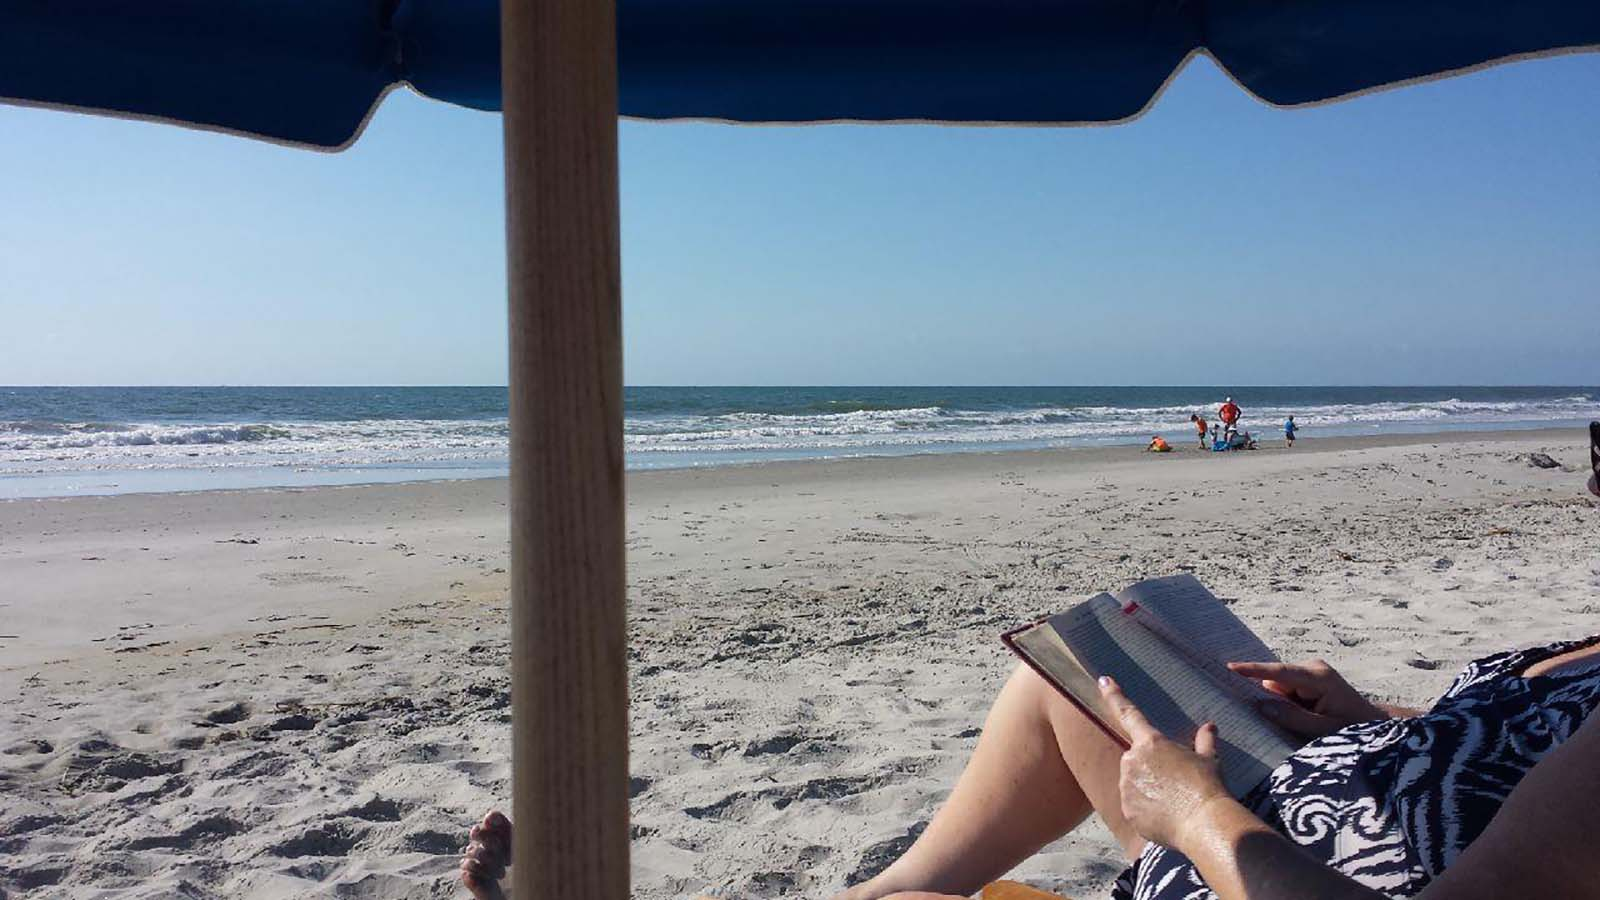 Women on the beach relaxing reading a book